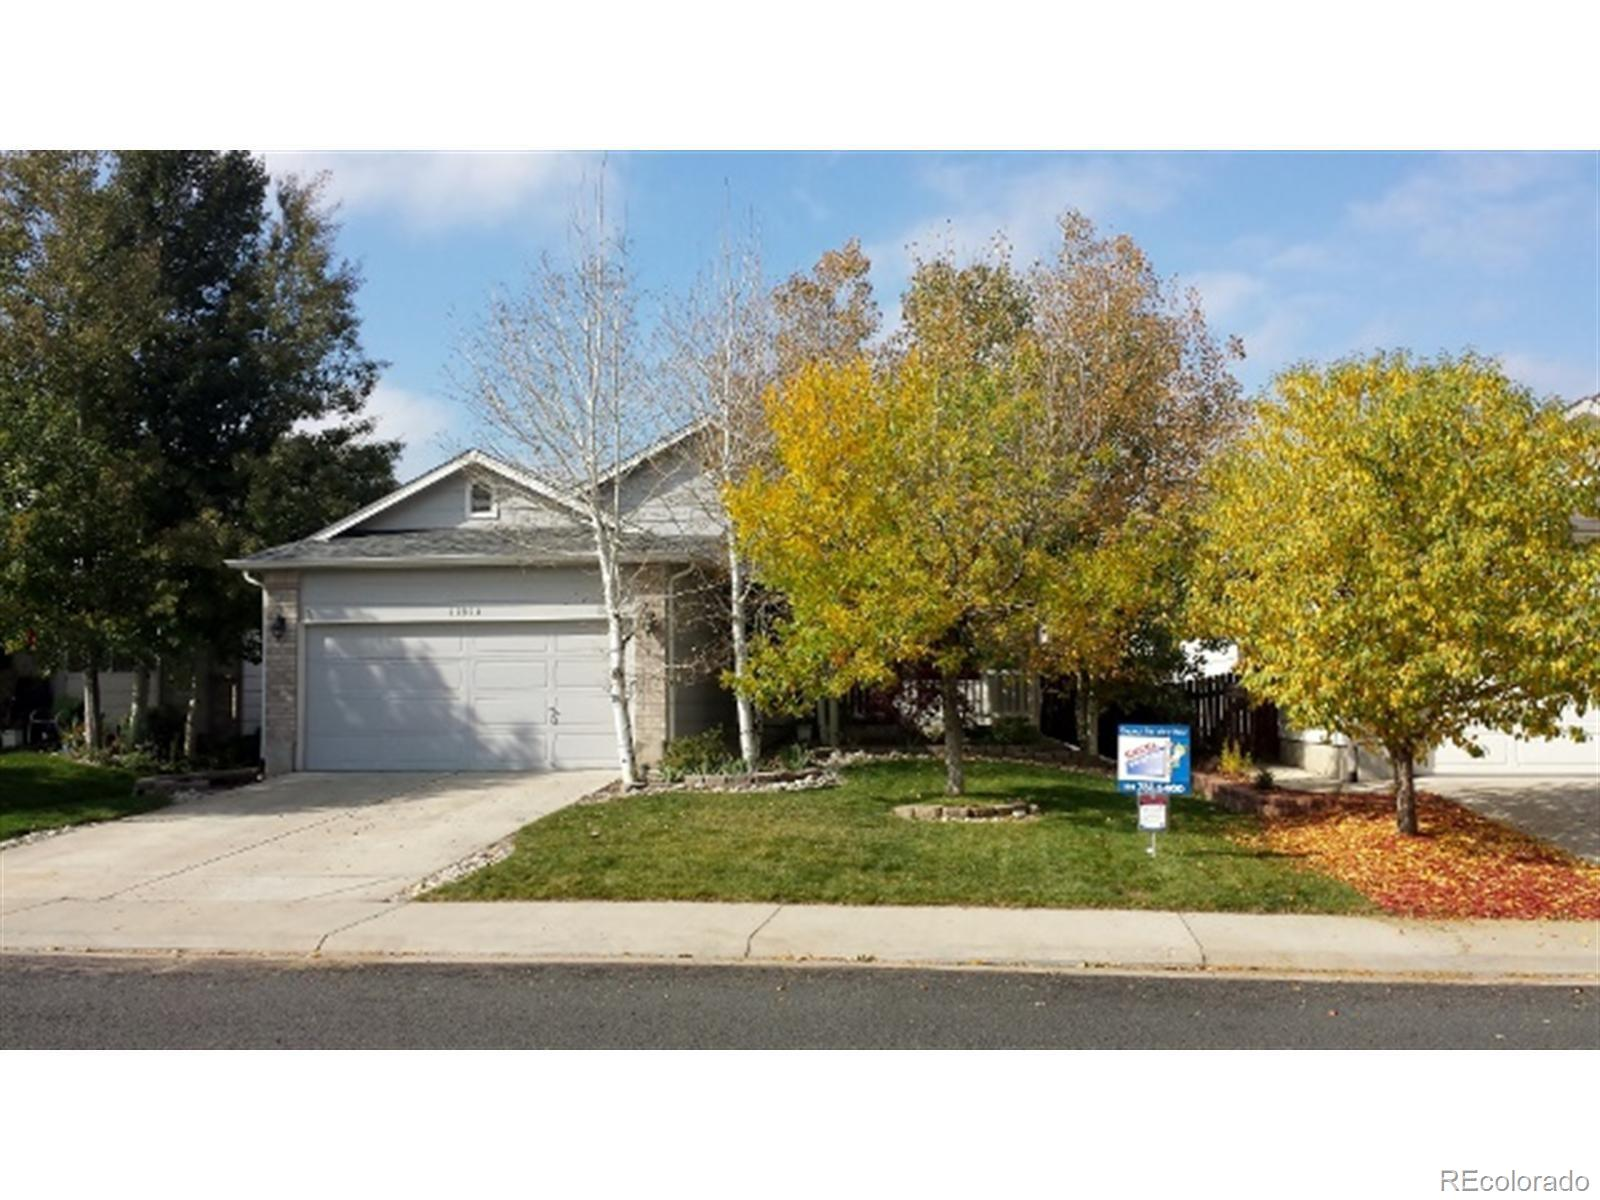 MLS# 4453376 - 1 - 11513 River Run Parkway, Commerce City, CO 80640